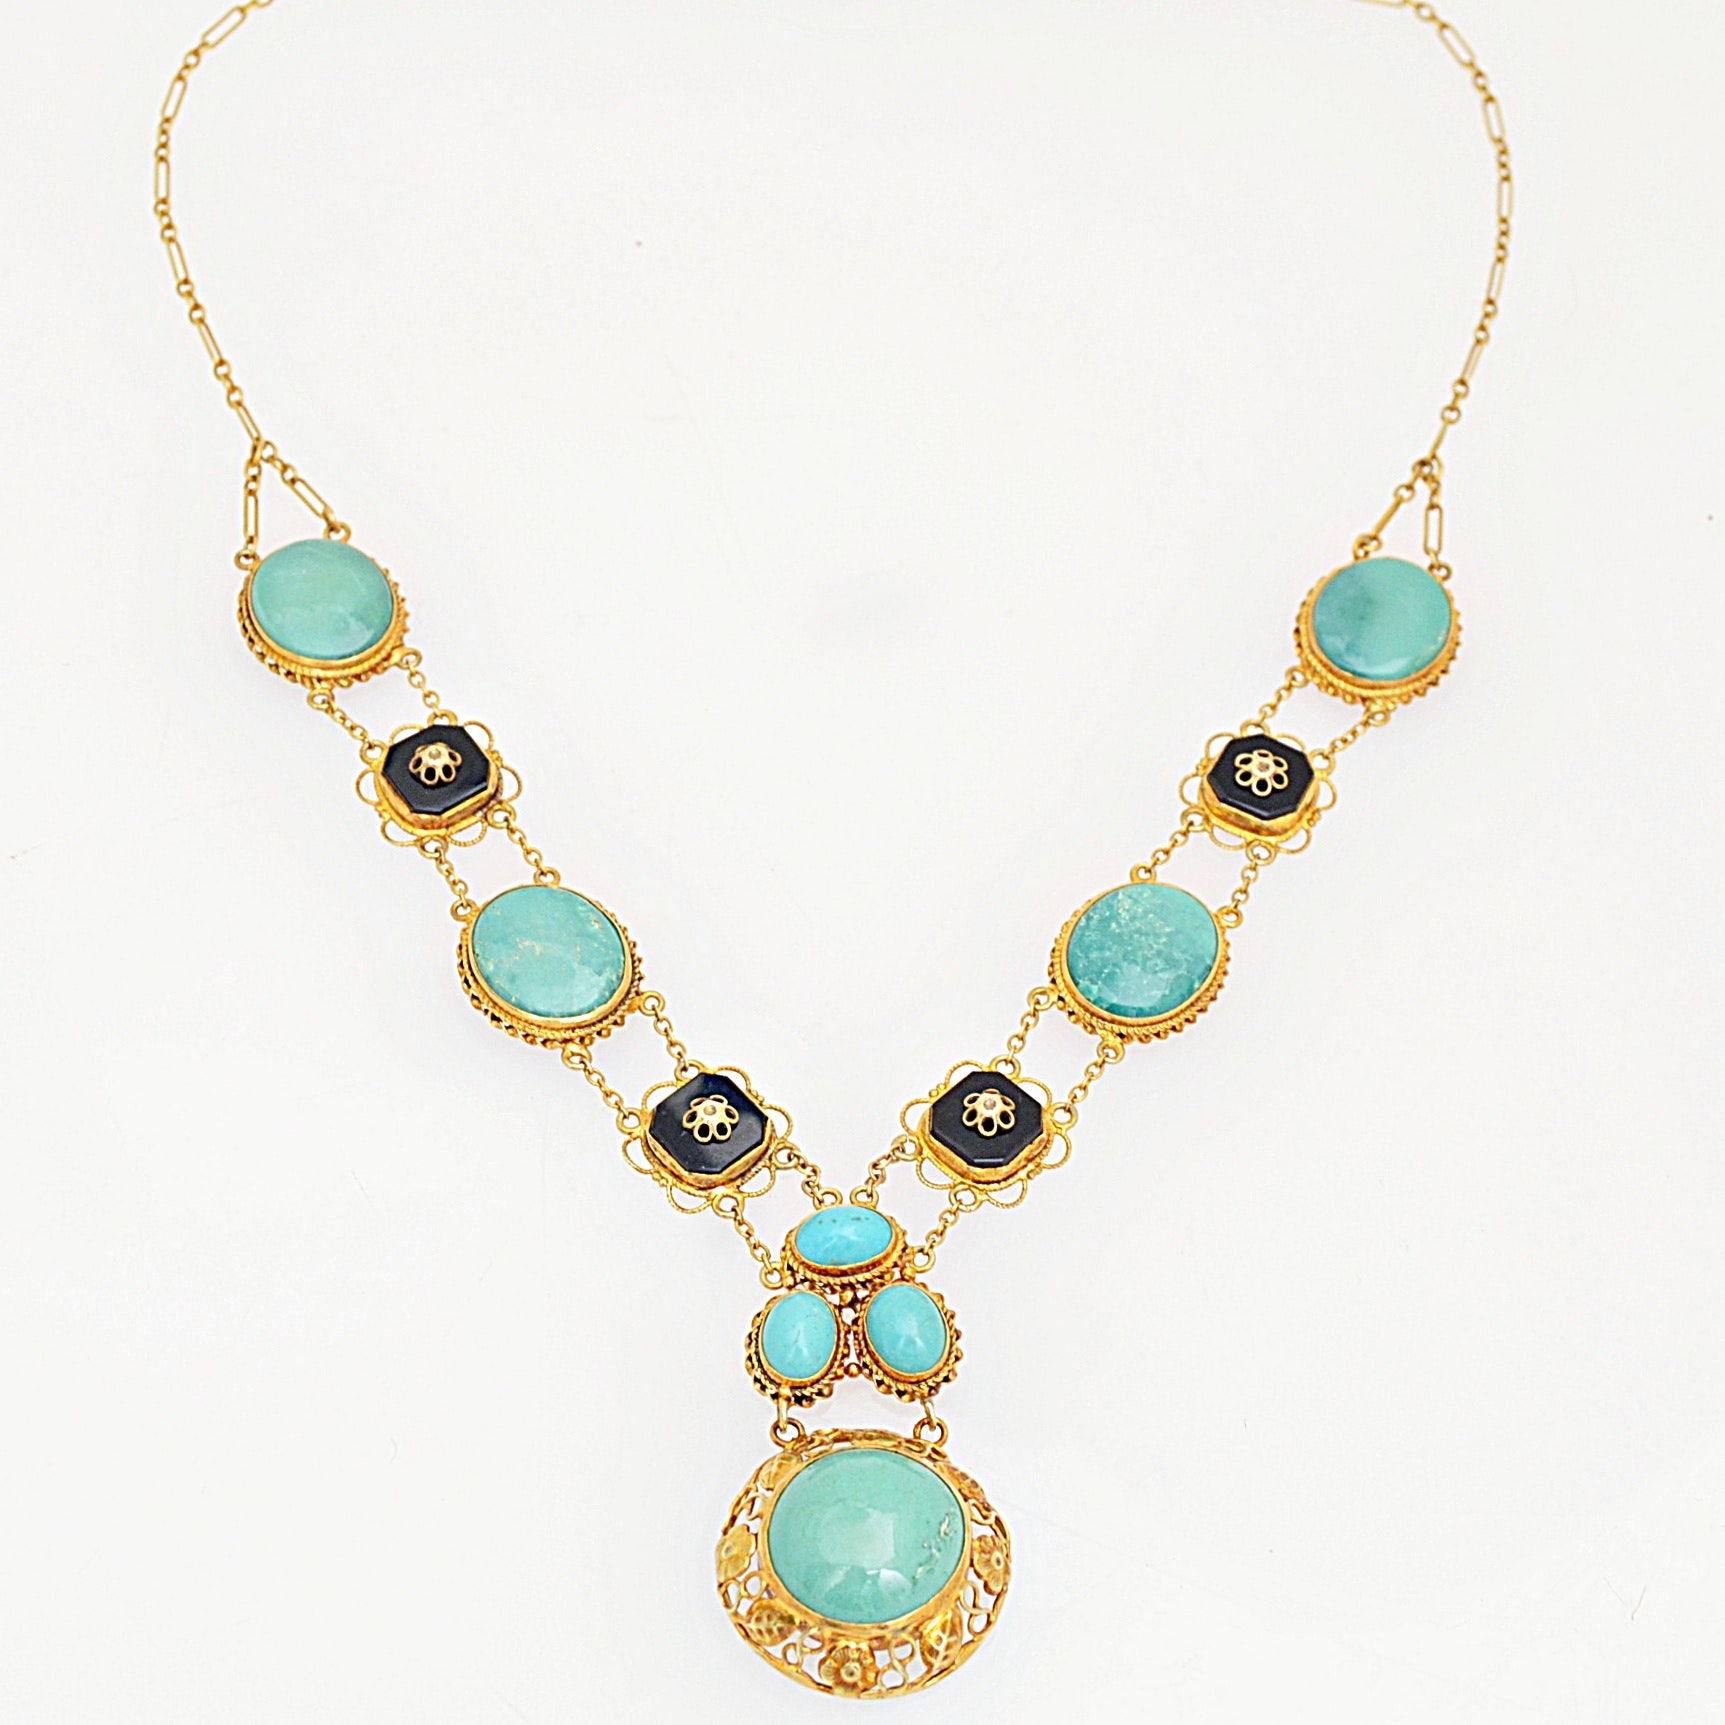 Vintage 14K Yellow Gold, Turquoise and Black Onyx Necklace